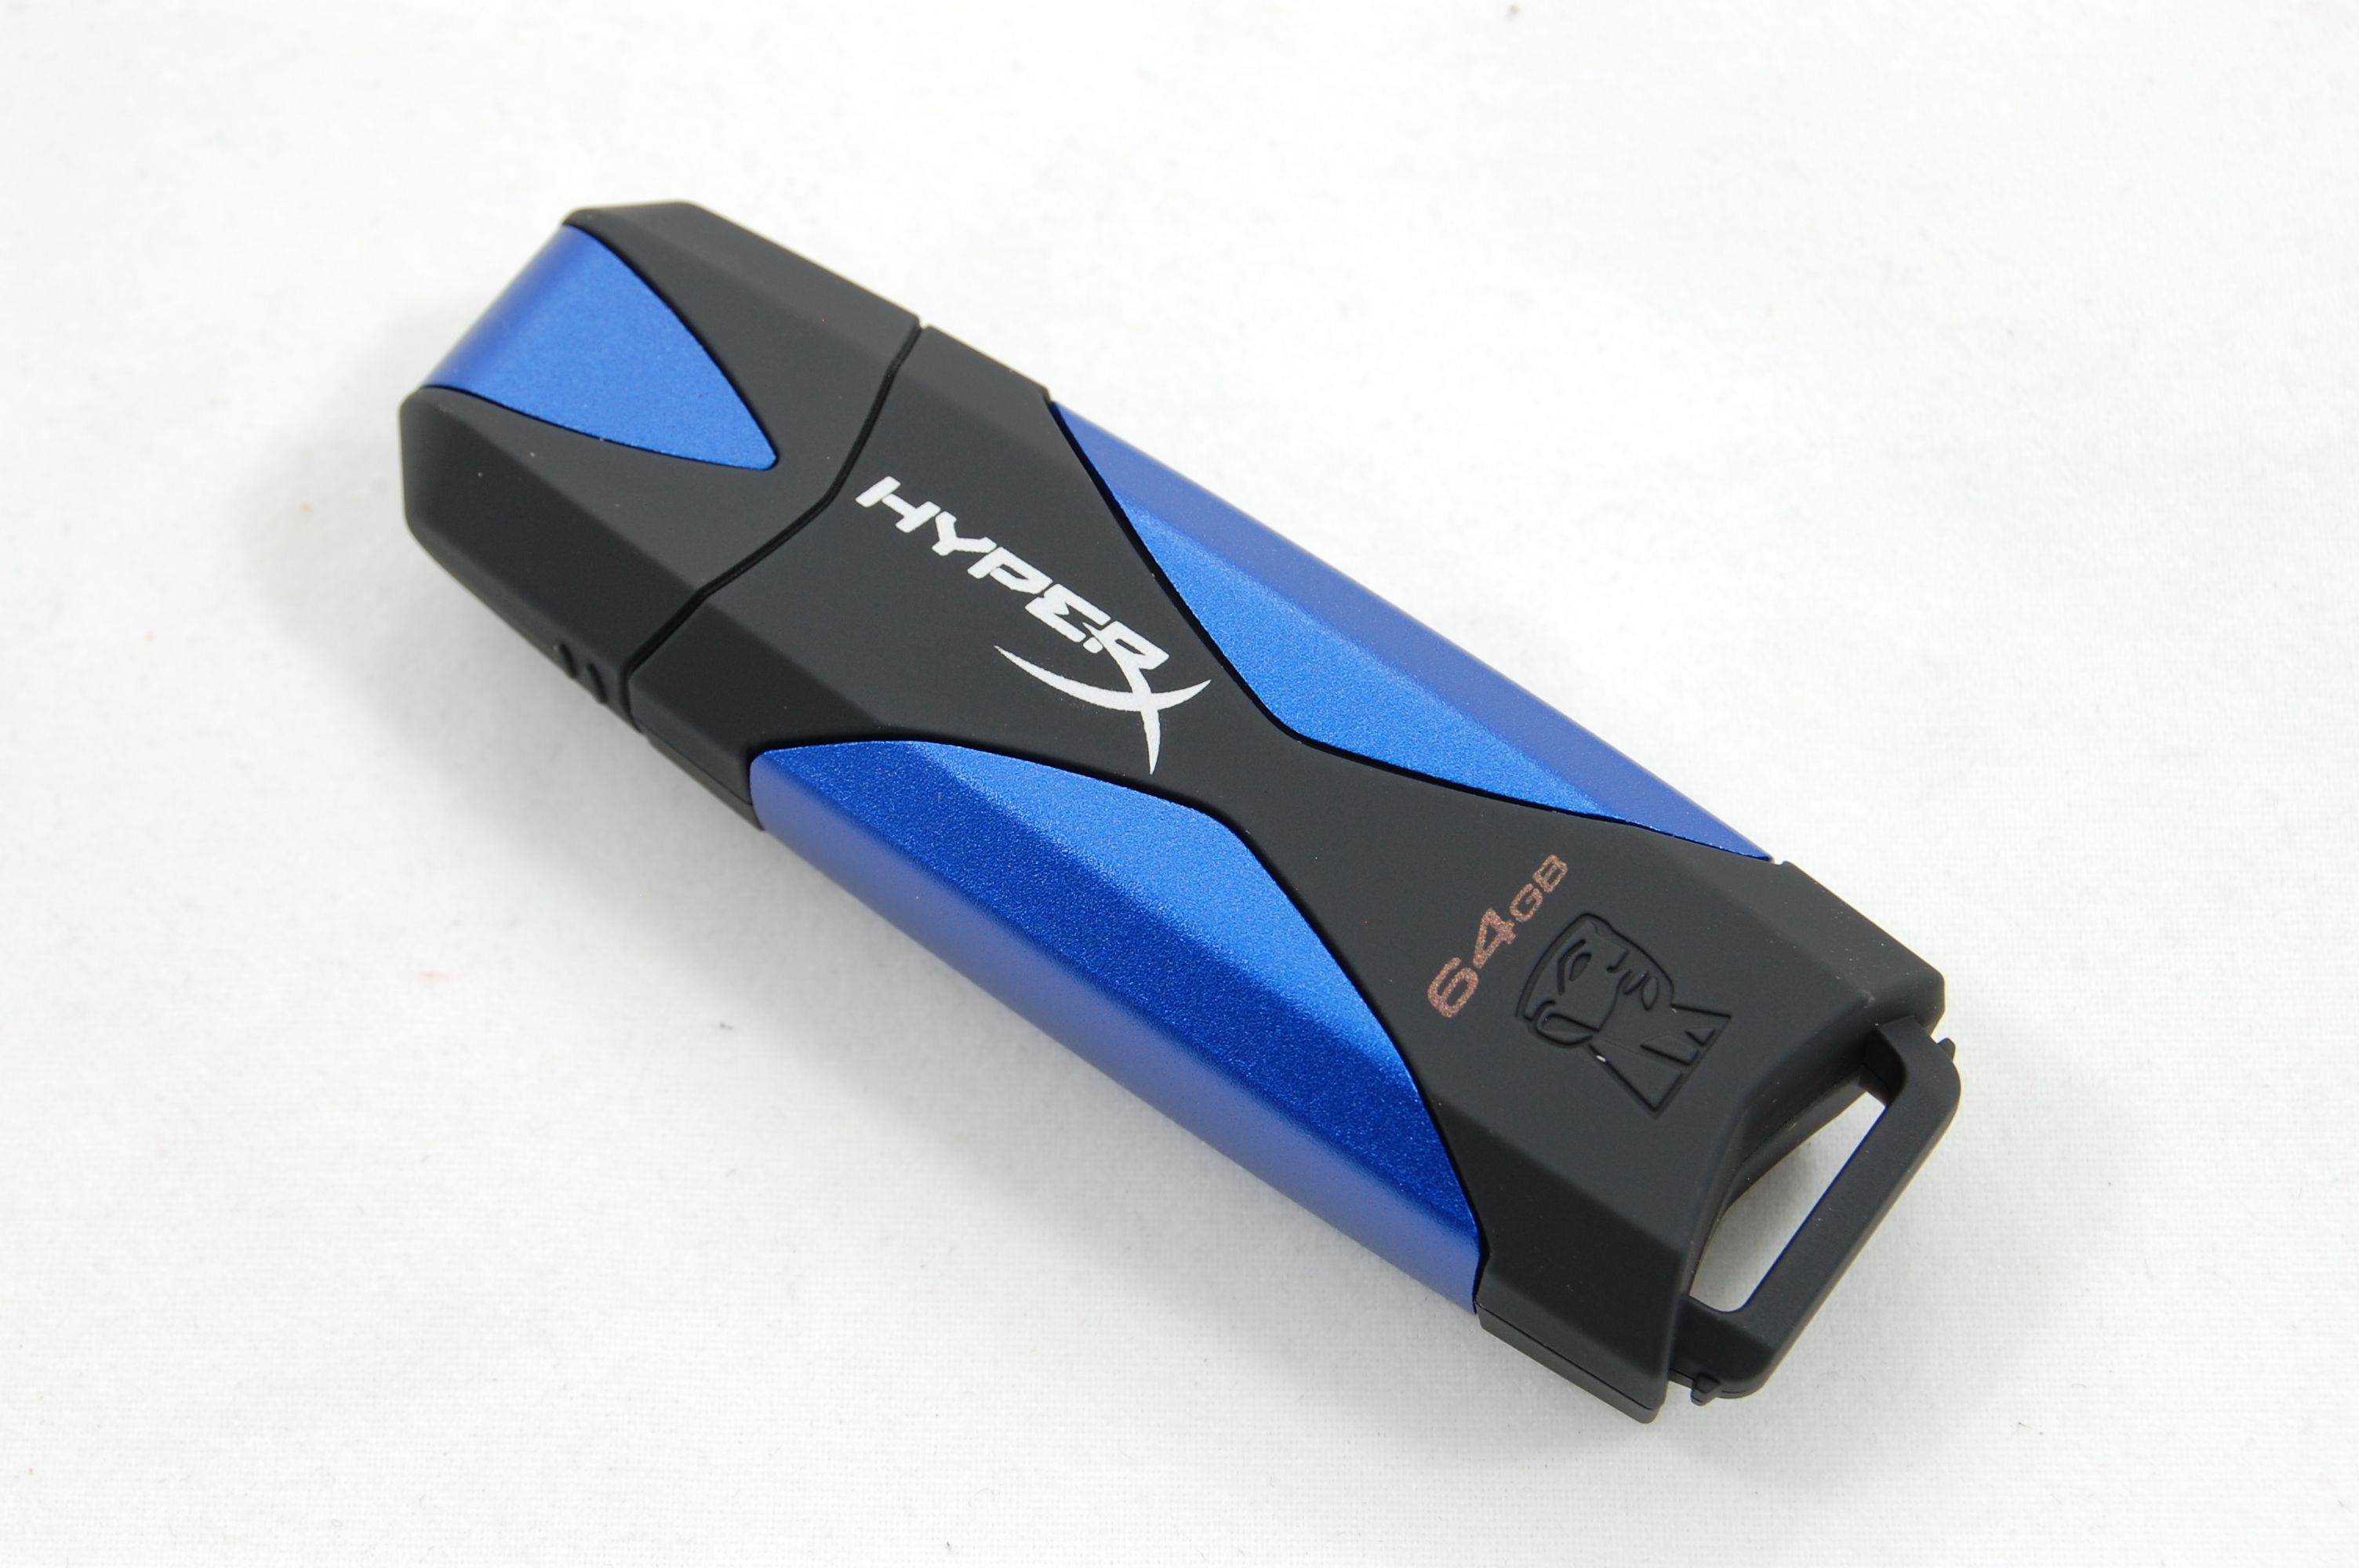 Kingston HyperX USB 3.0 64GB